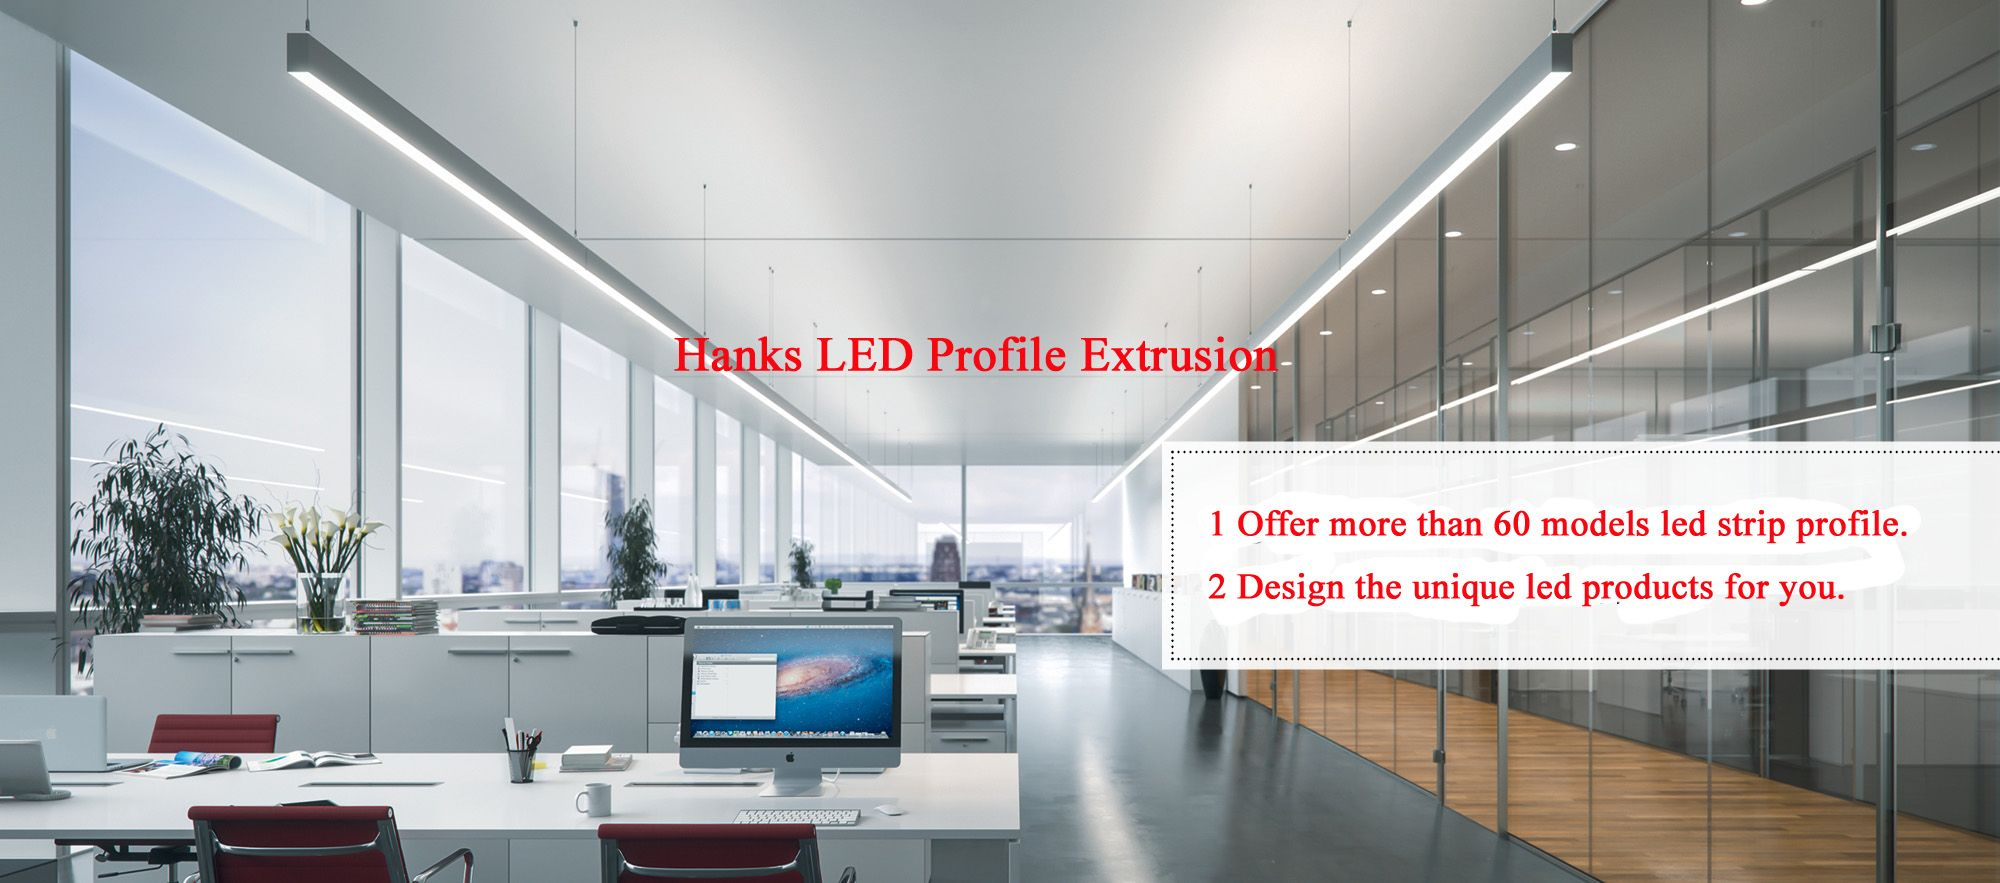 We Also Provide Led Design For Customersu0027 Requirements.With 5 Engineers  Team,we